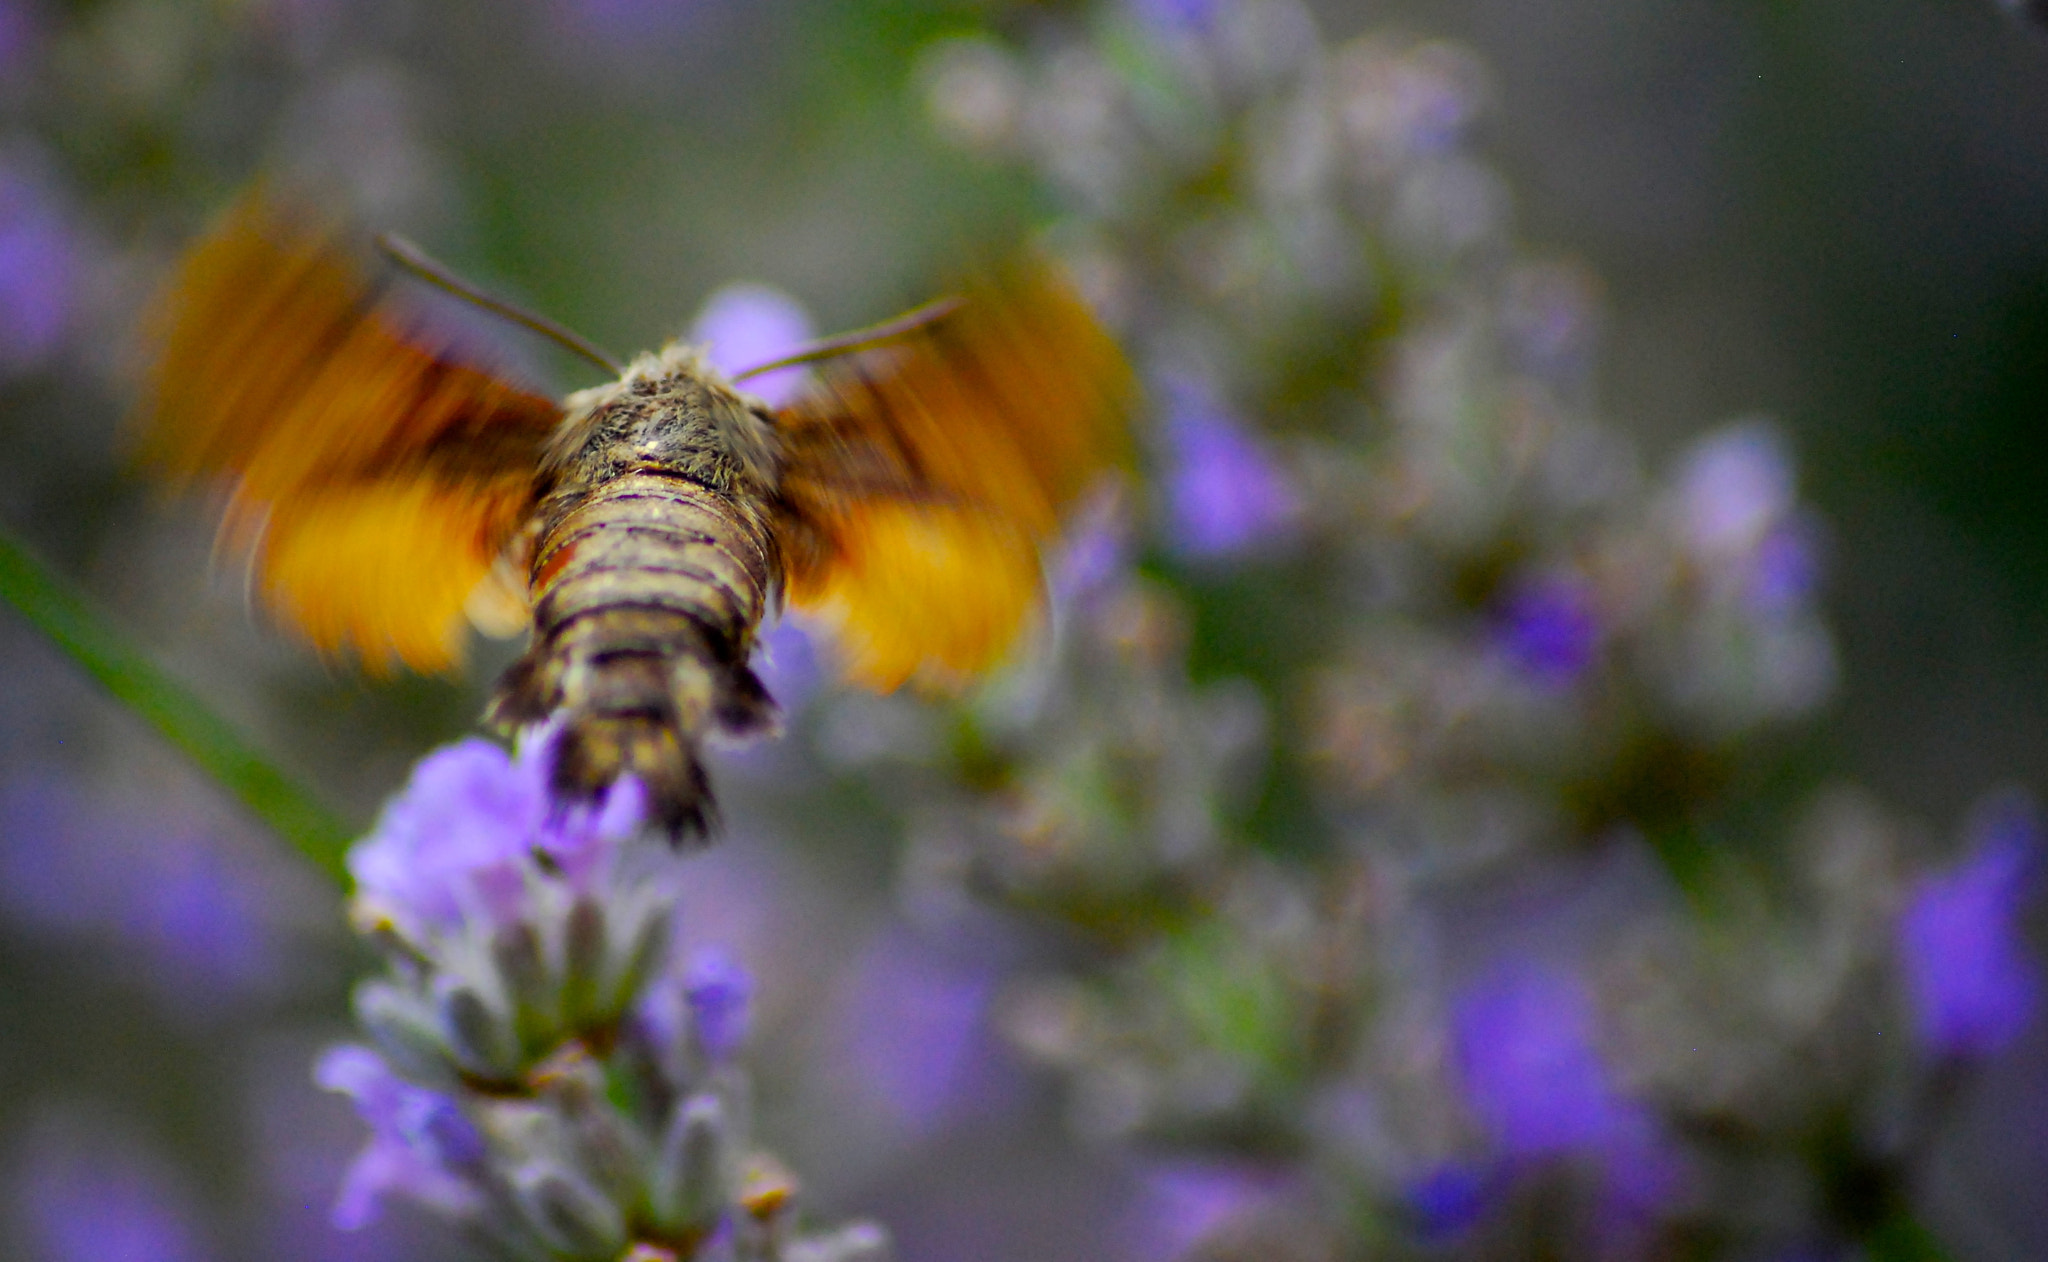 Photograph The fly by Jules Calop on 500px